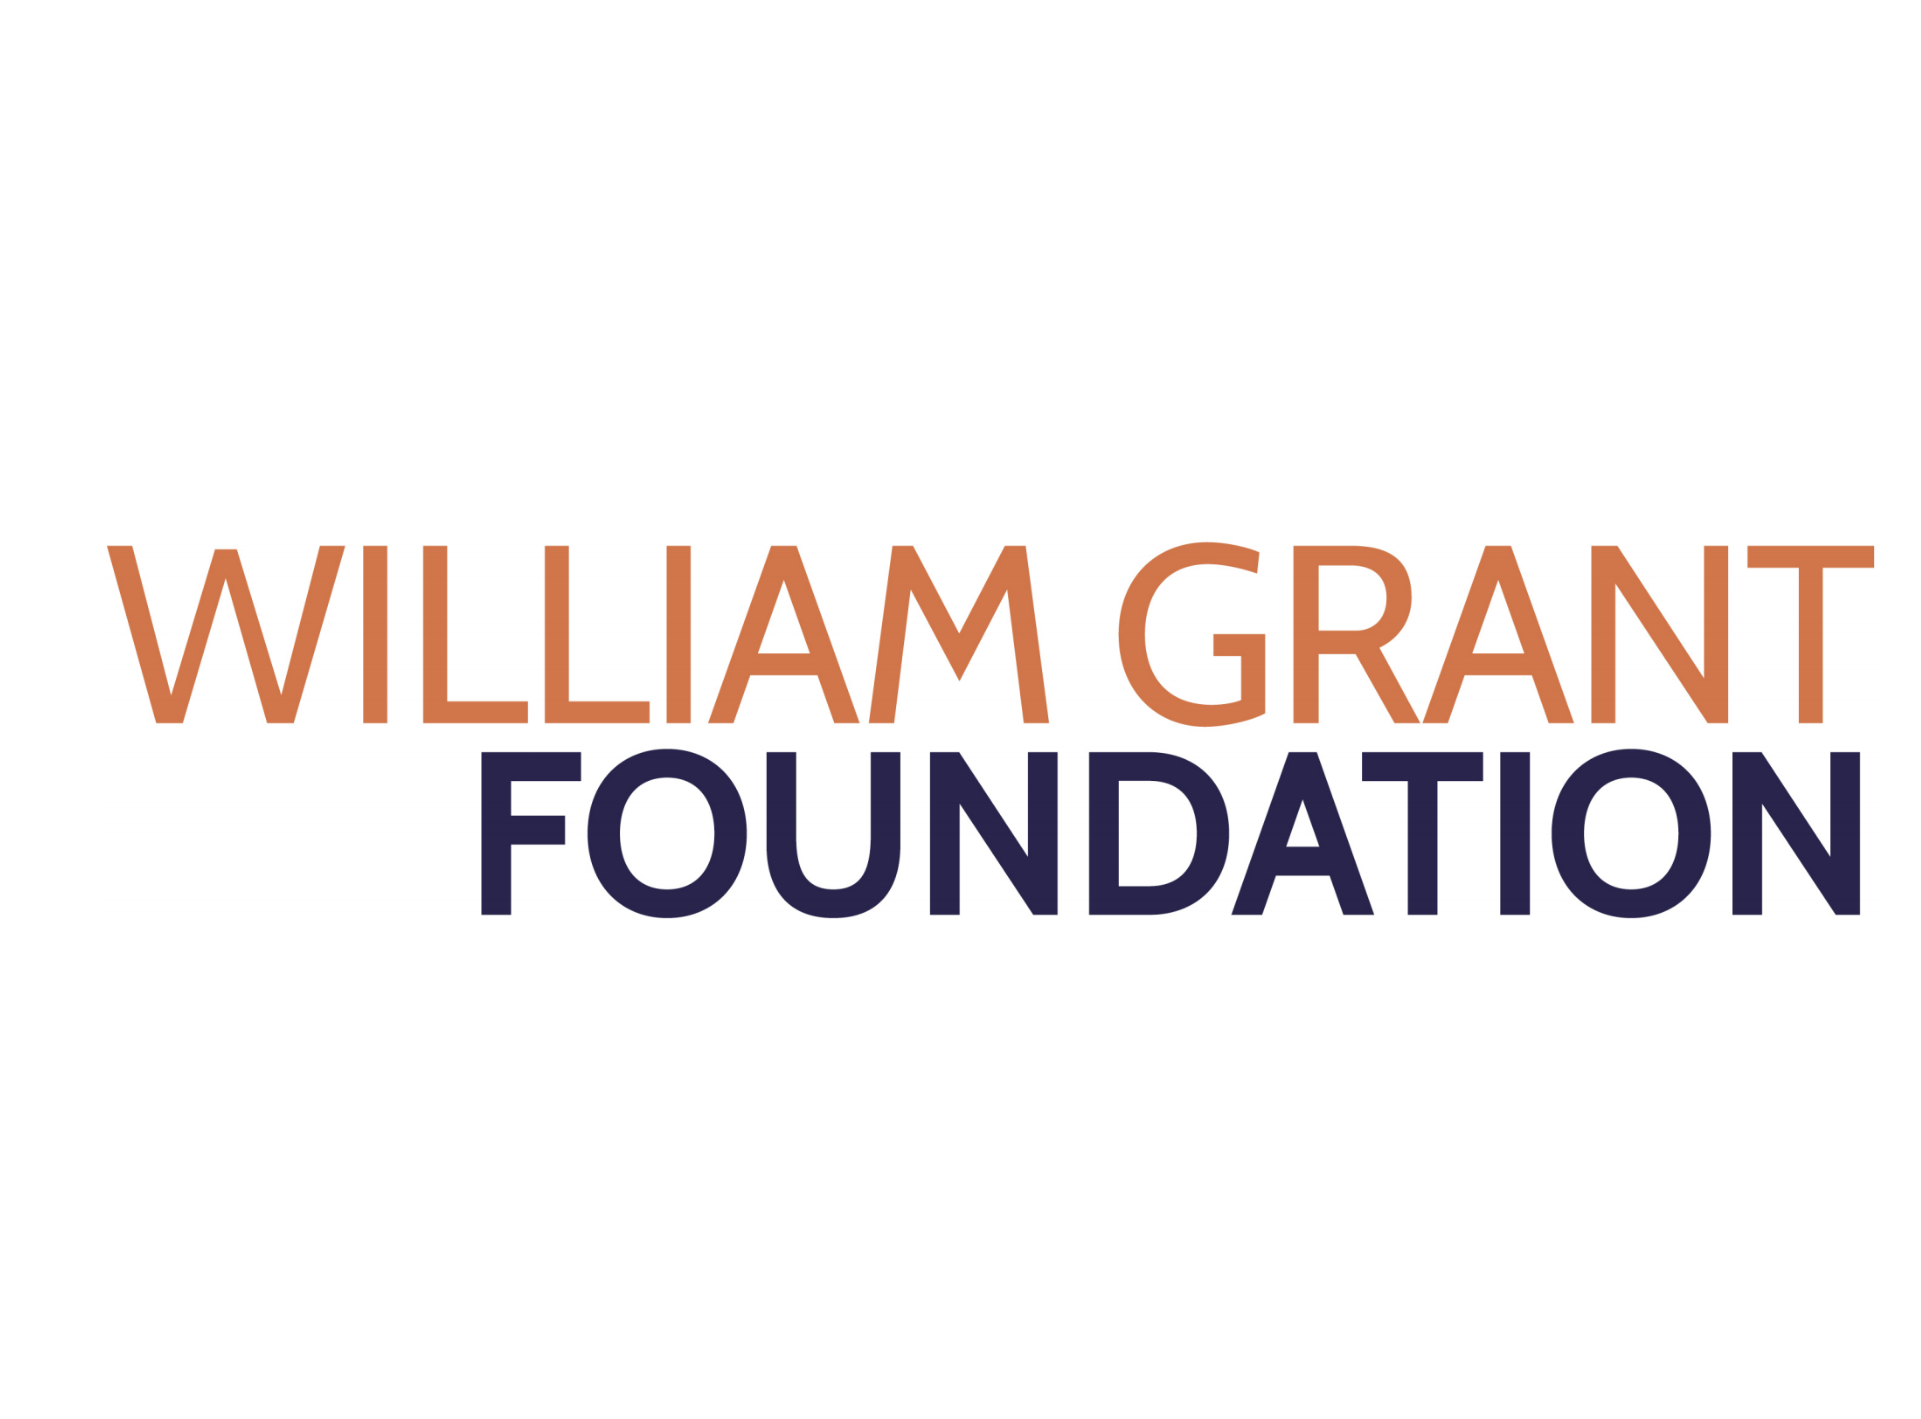 William Grant Foundation logo